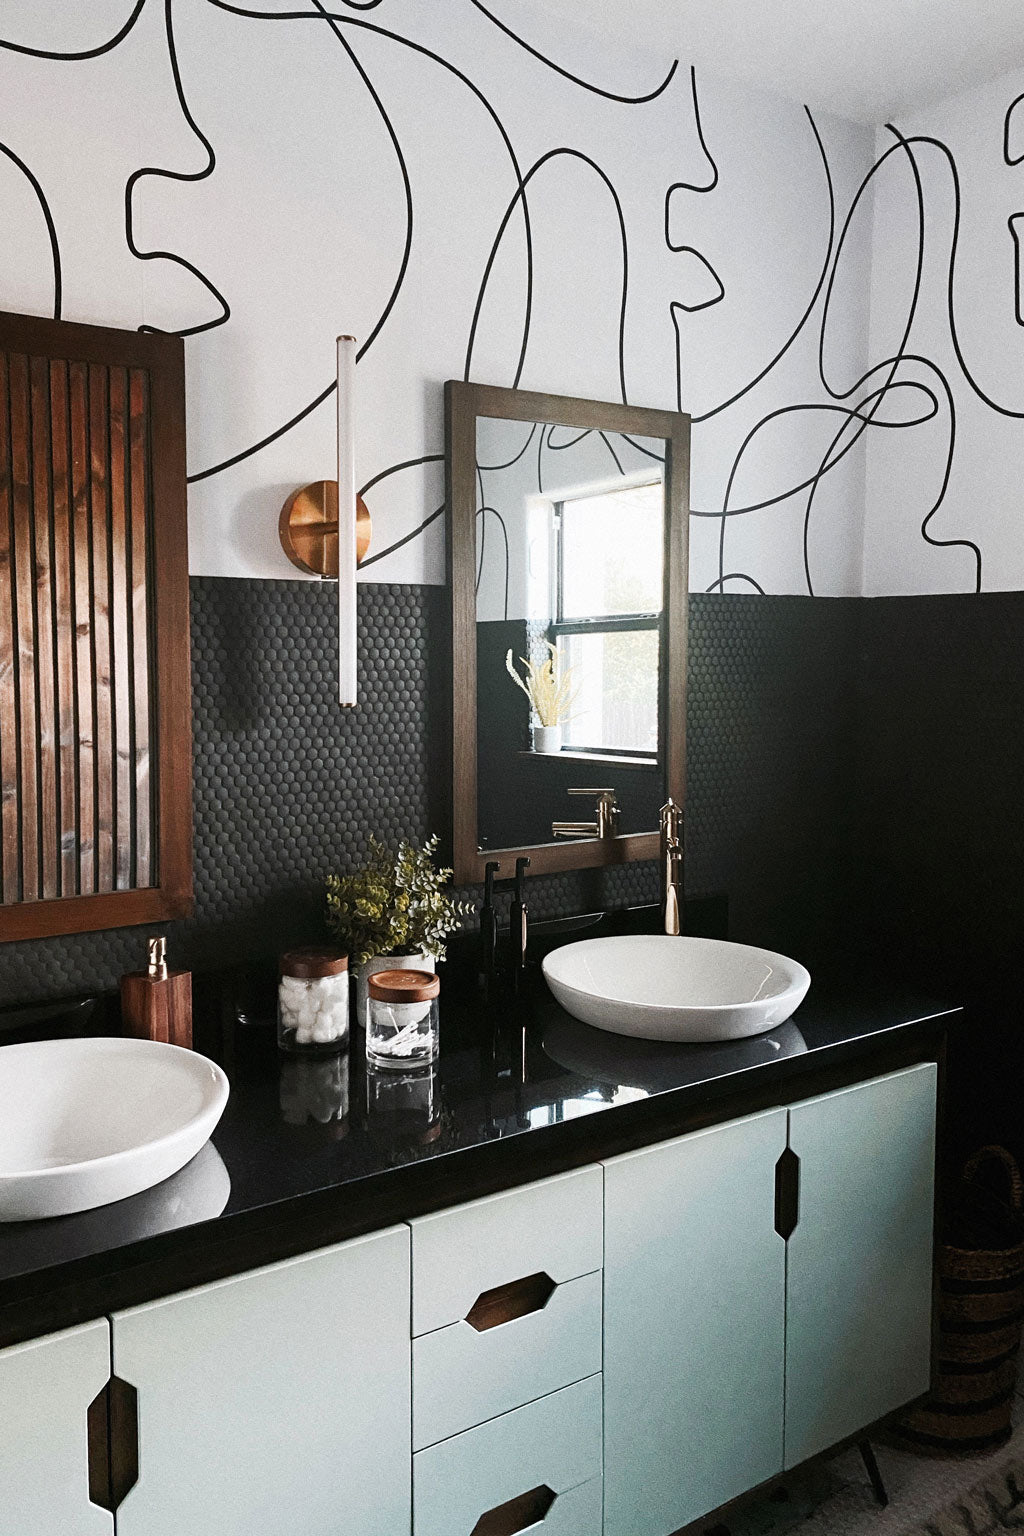 Mid century modern bathroom interior with peel and stick wallpaper and sage green vanity